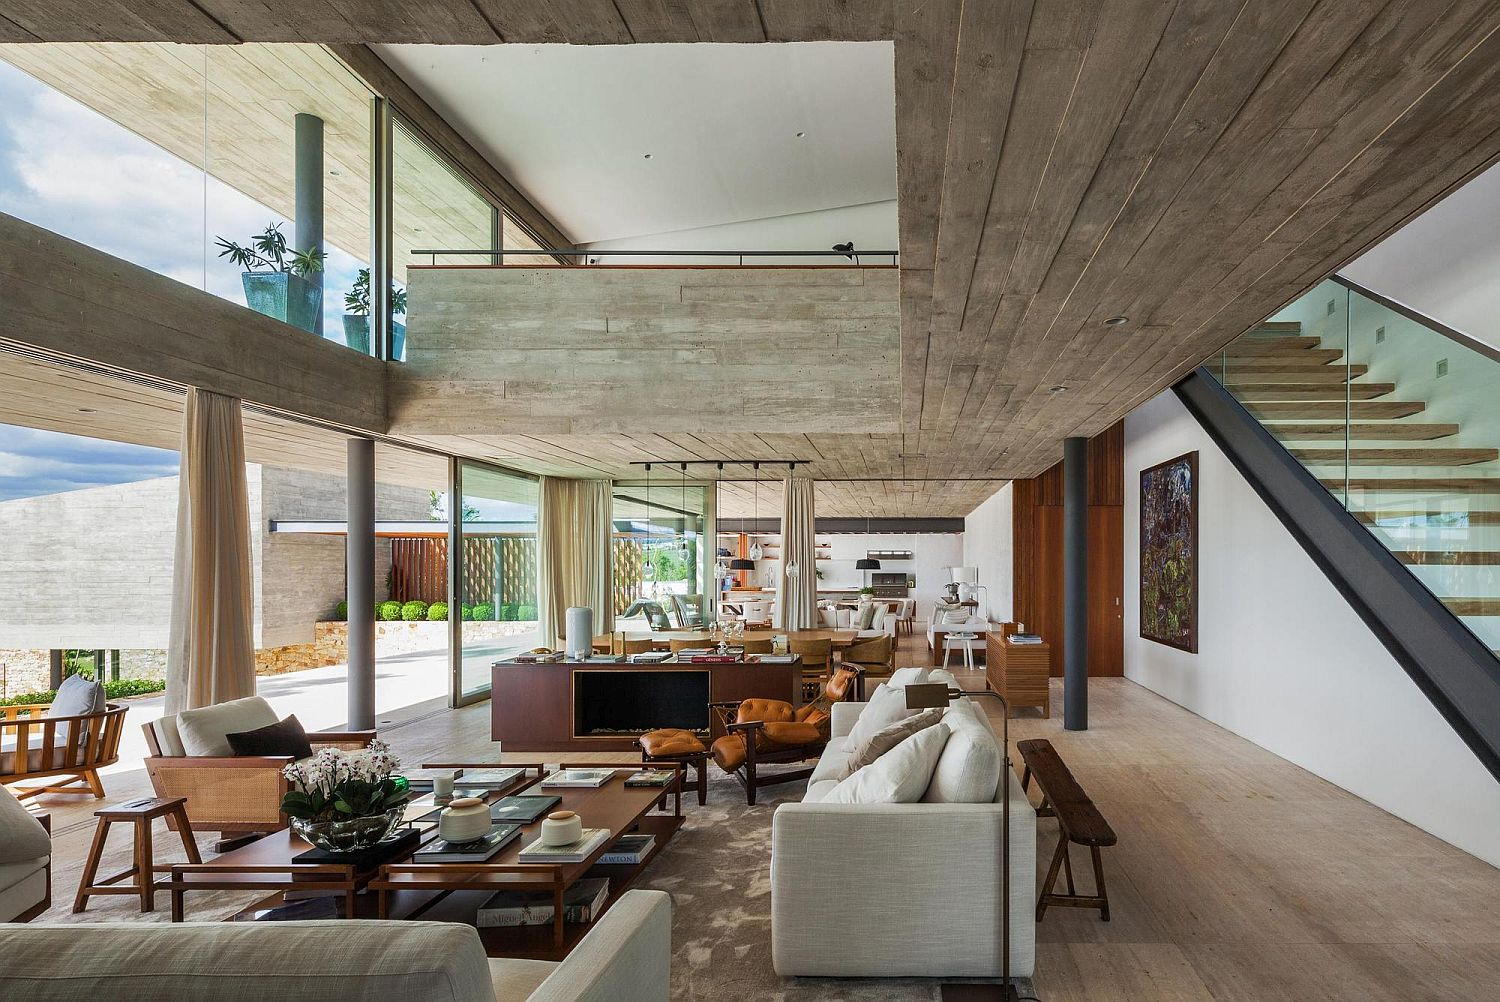 Concrete gives the interior a relaxing modern appeal